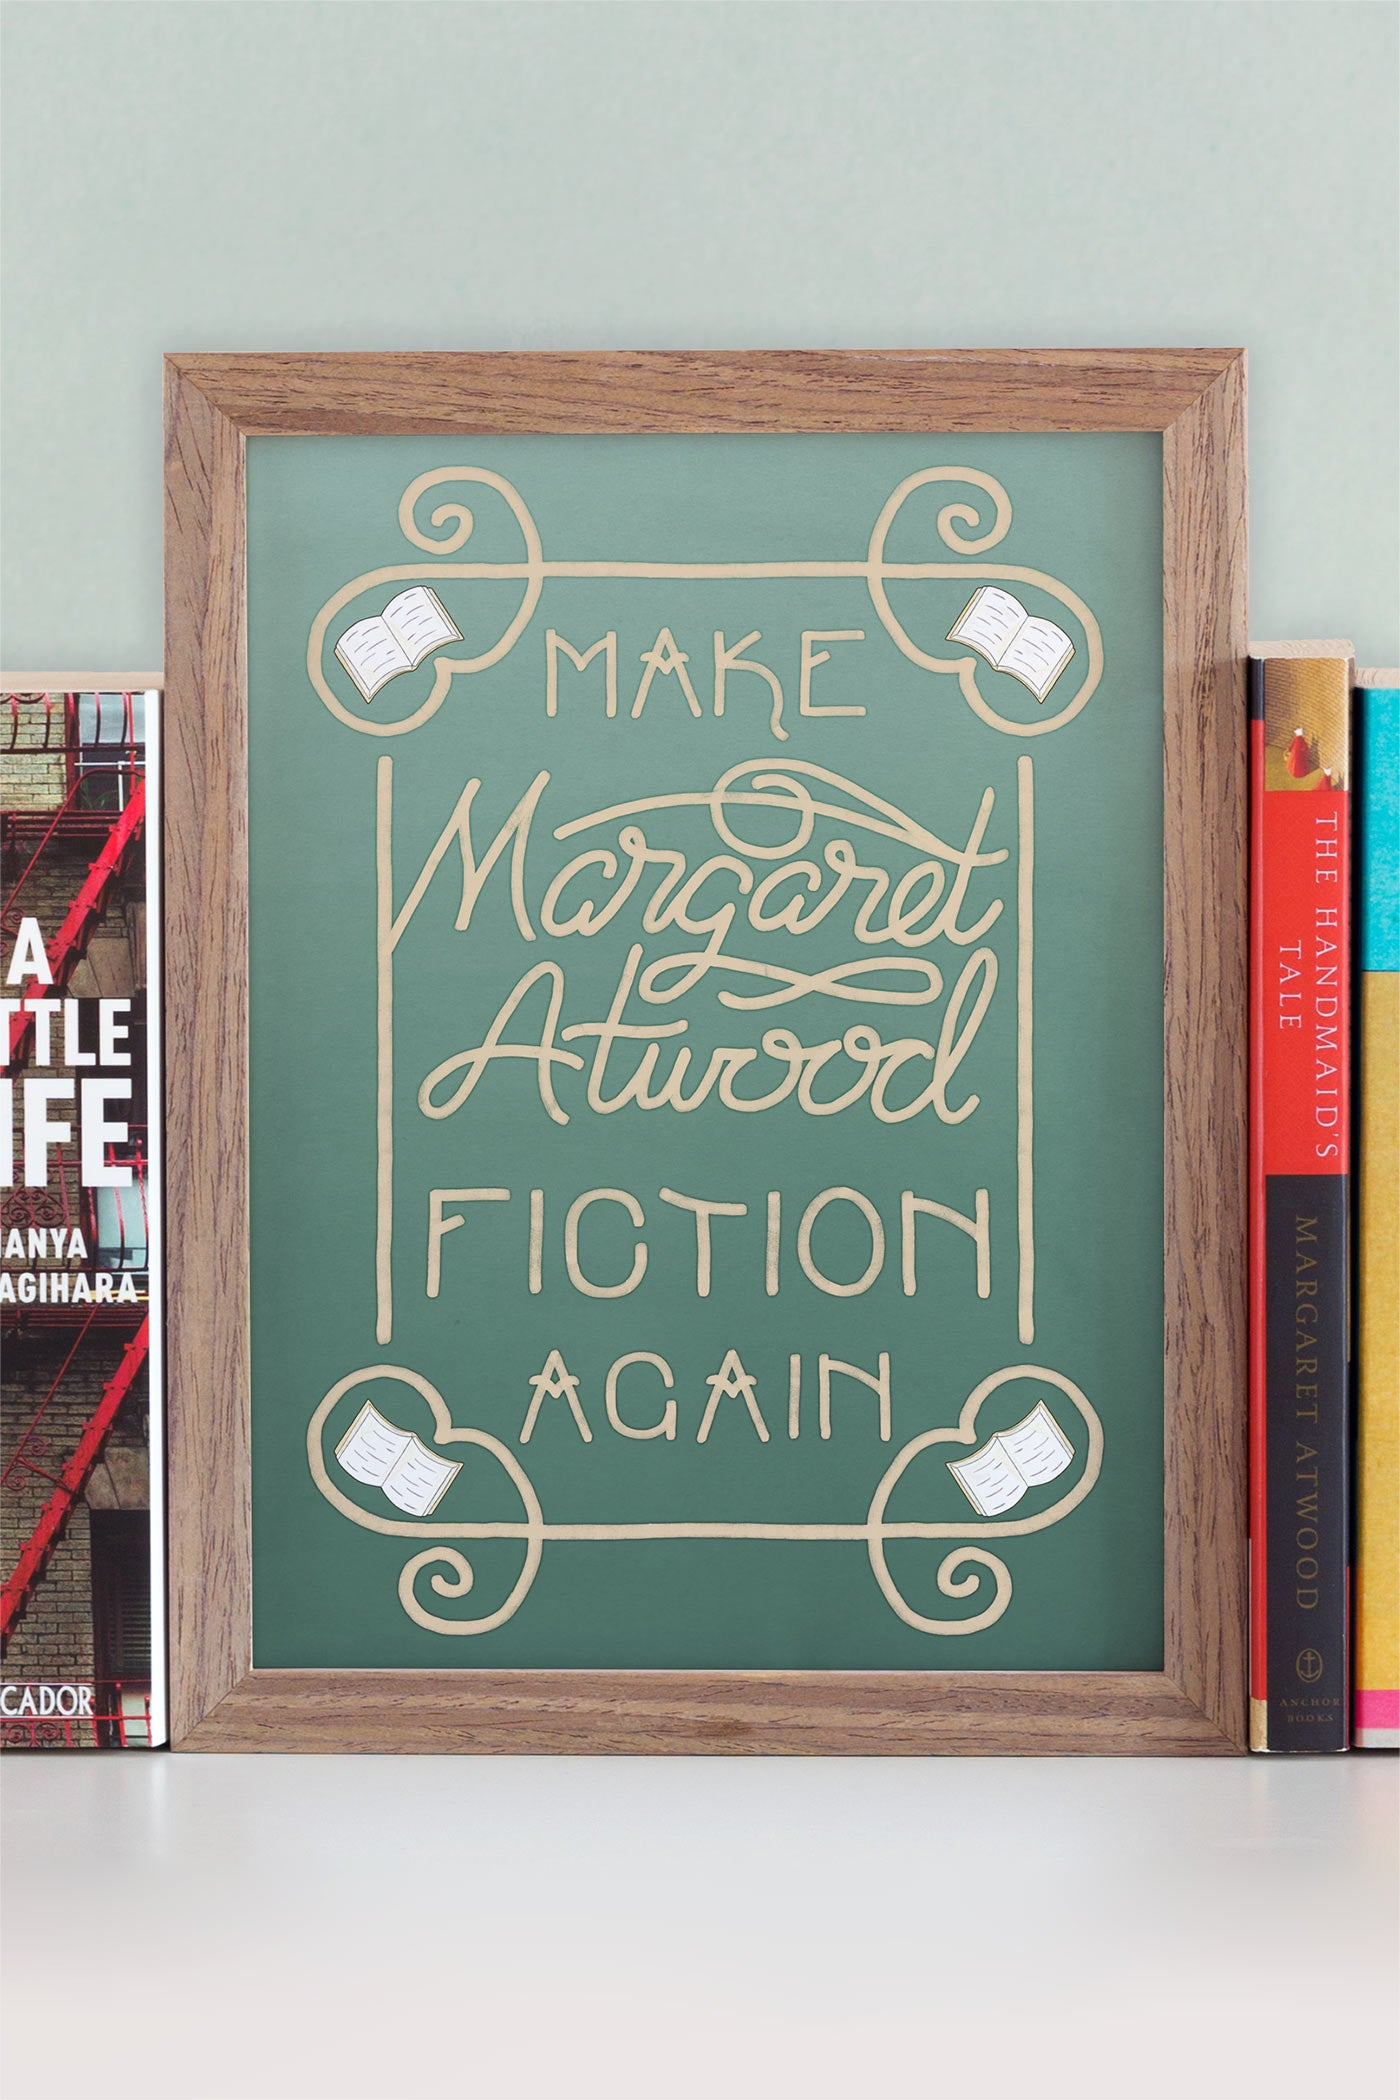 Make Margaret Atwood Fiction Again Handmaid's Tale Feminist Art Print - A Rose Cast